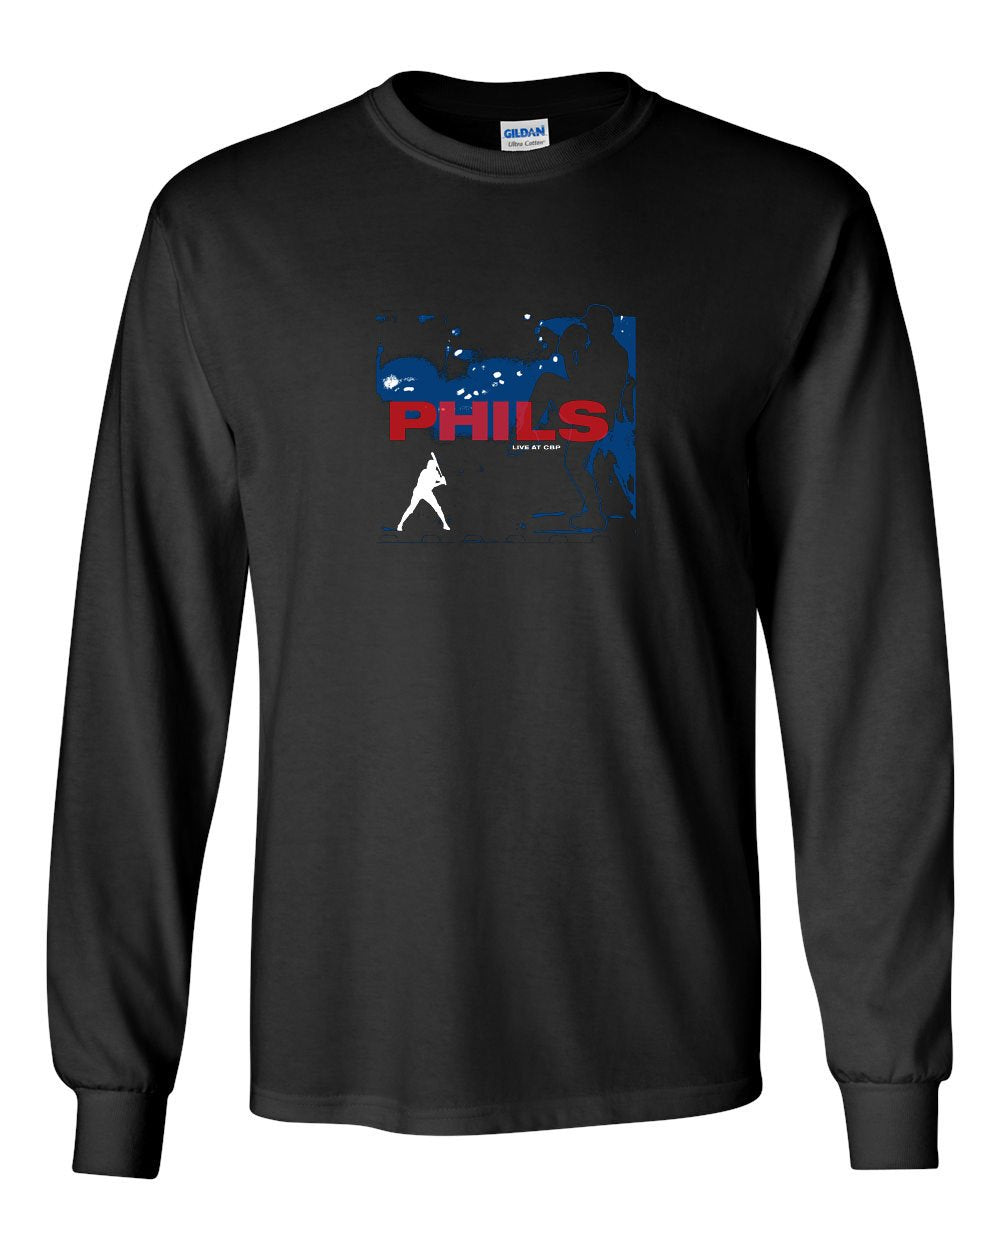 Live at CBP MENS Long Sleeve Heavy Cotton T-Shirt